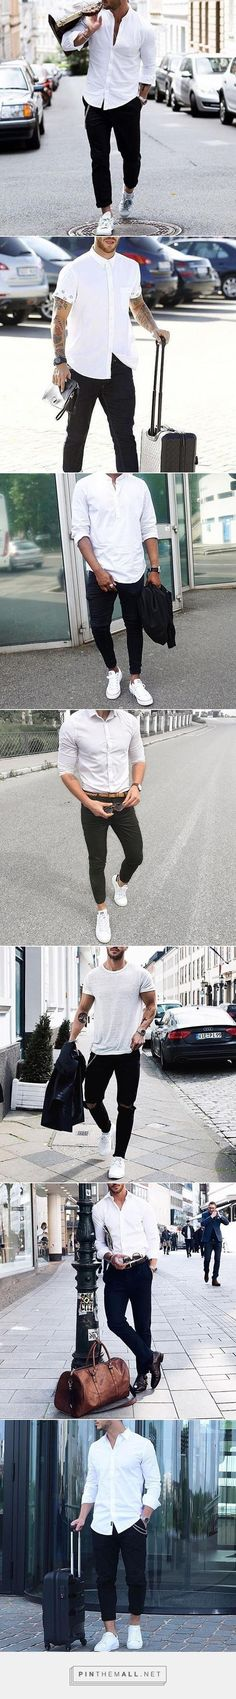 Black & White Outfit Combination For Men. #mensfashion